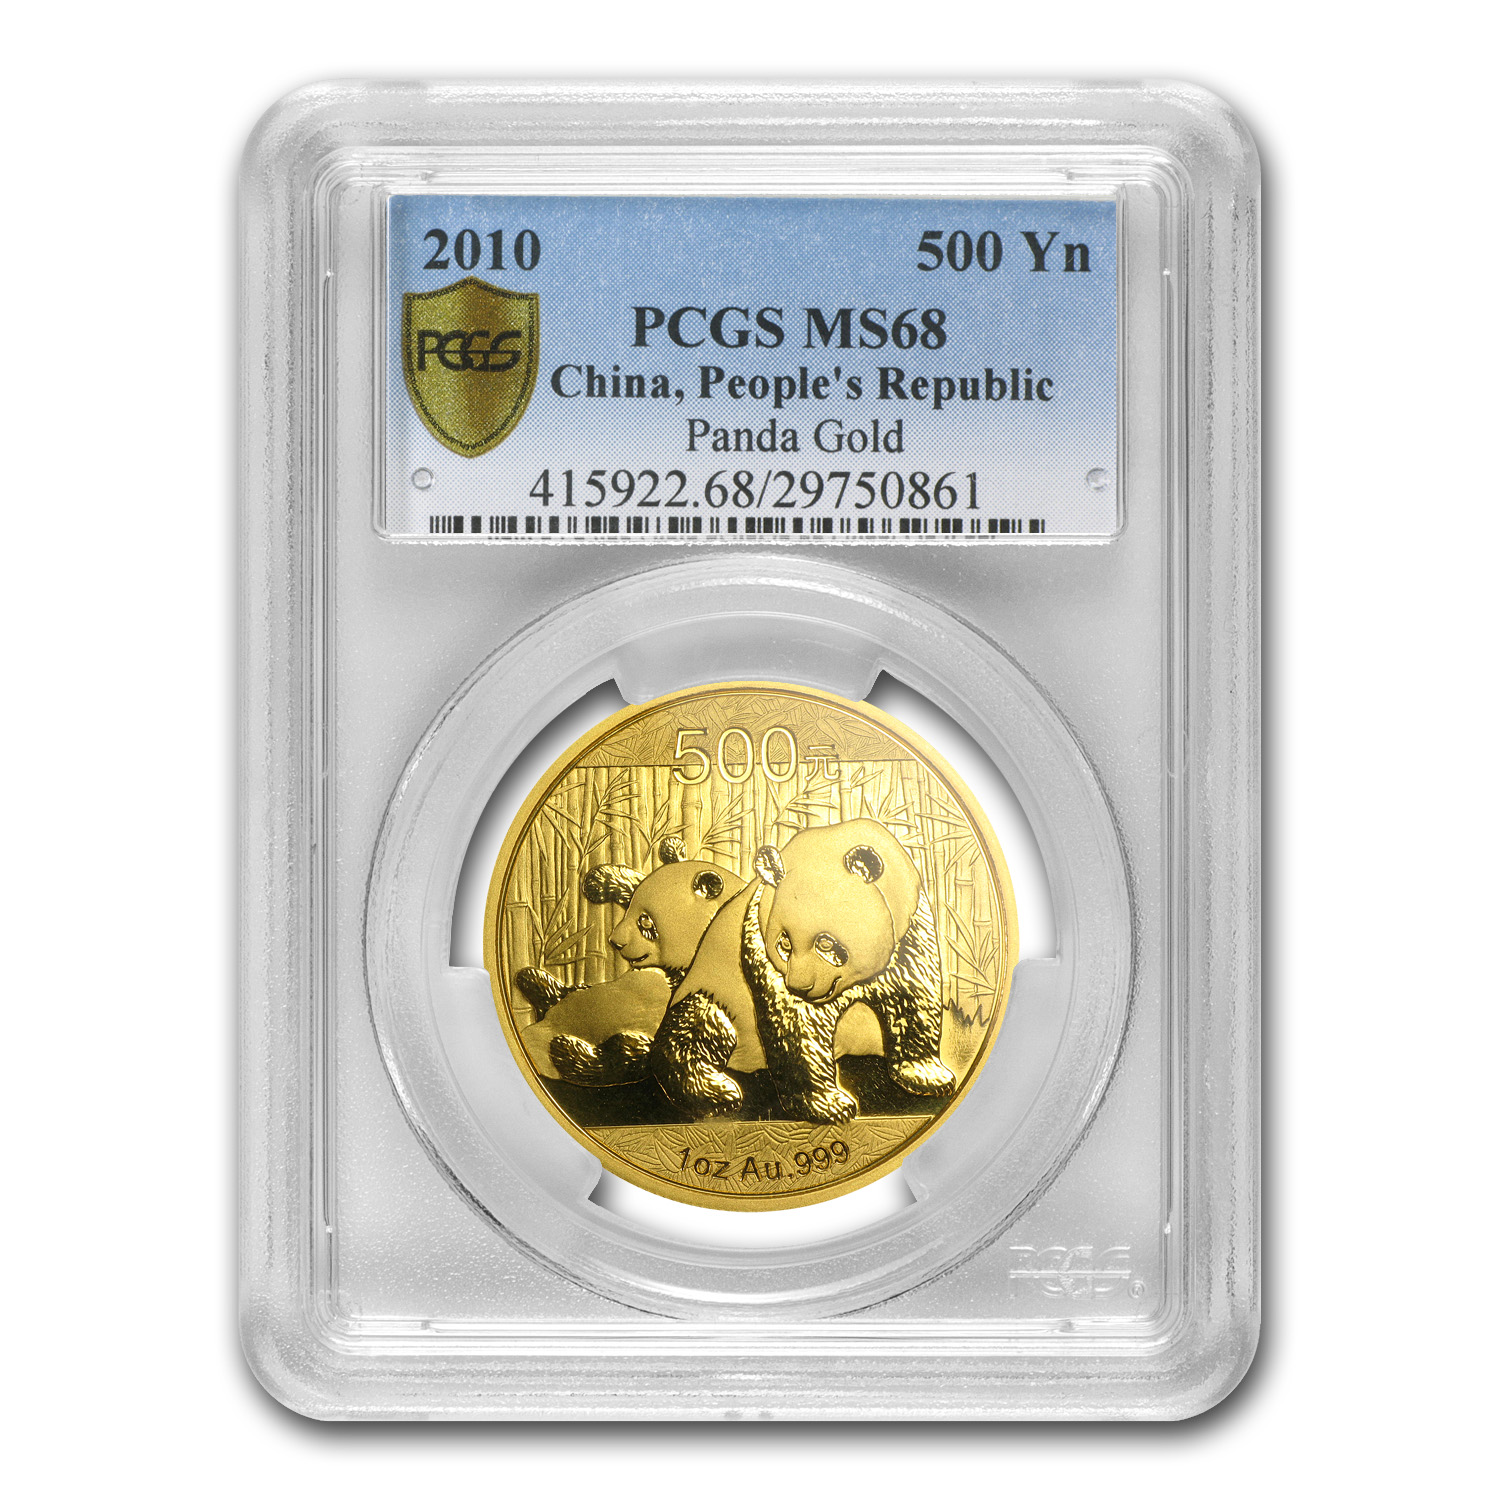 2010 1 oz Gold Chinese Panda MS-68 PCGS